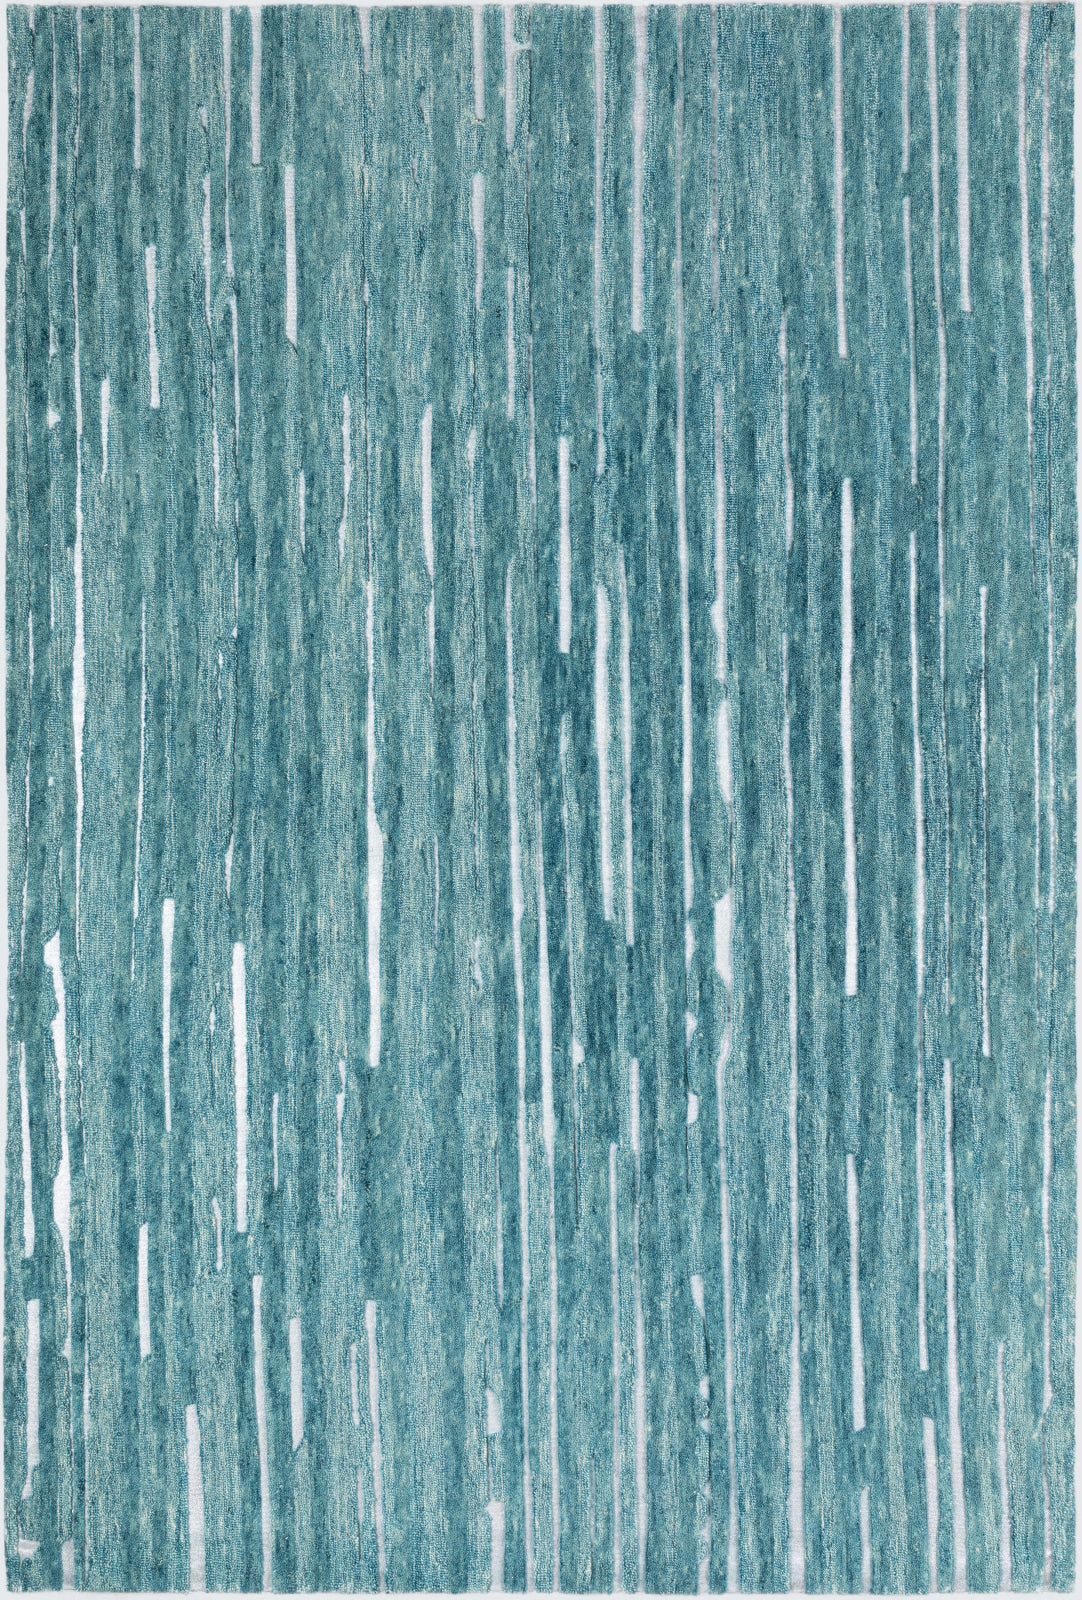 Dalyn Vibes VB1 Teal Area Rug main image